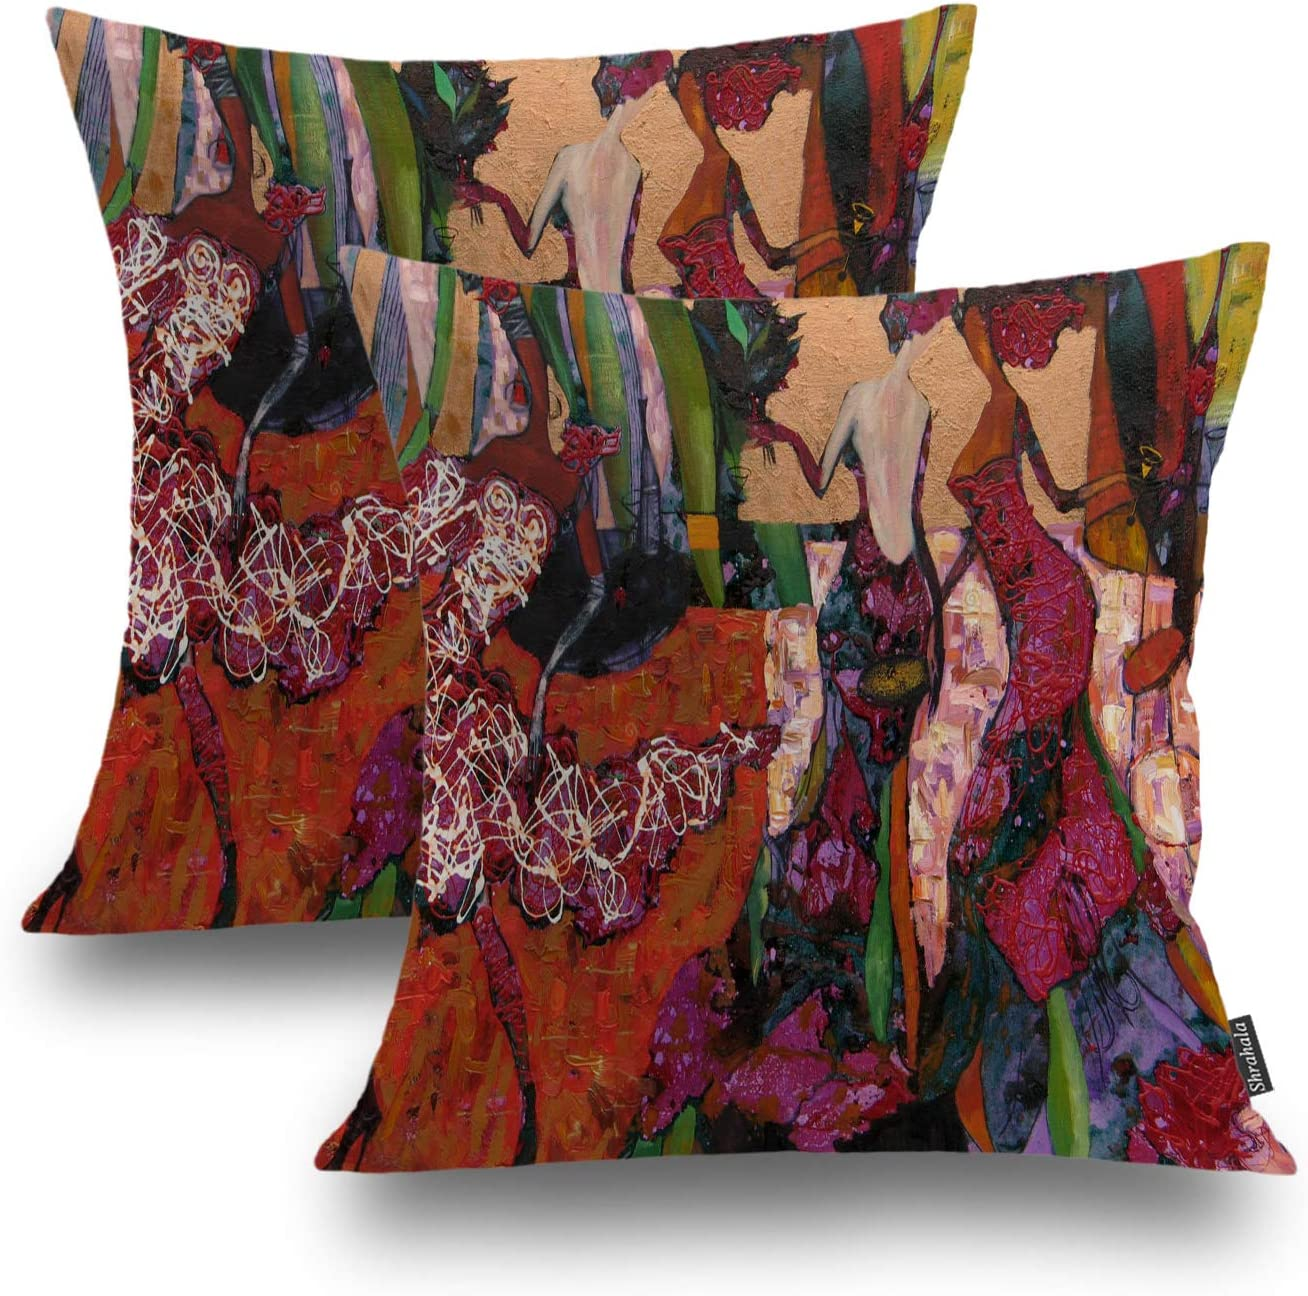 Shrahala Fashion Modern Decorative Pillow Covers, Abstract Silhouette Vibrant Cushion Case for Sofa Bedroom Car Throw Pillow Covers Cushion Cover Square 18 x 18 Inches Ivory, Set of 2